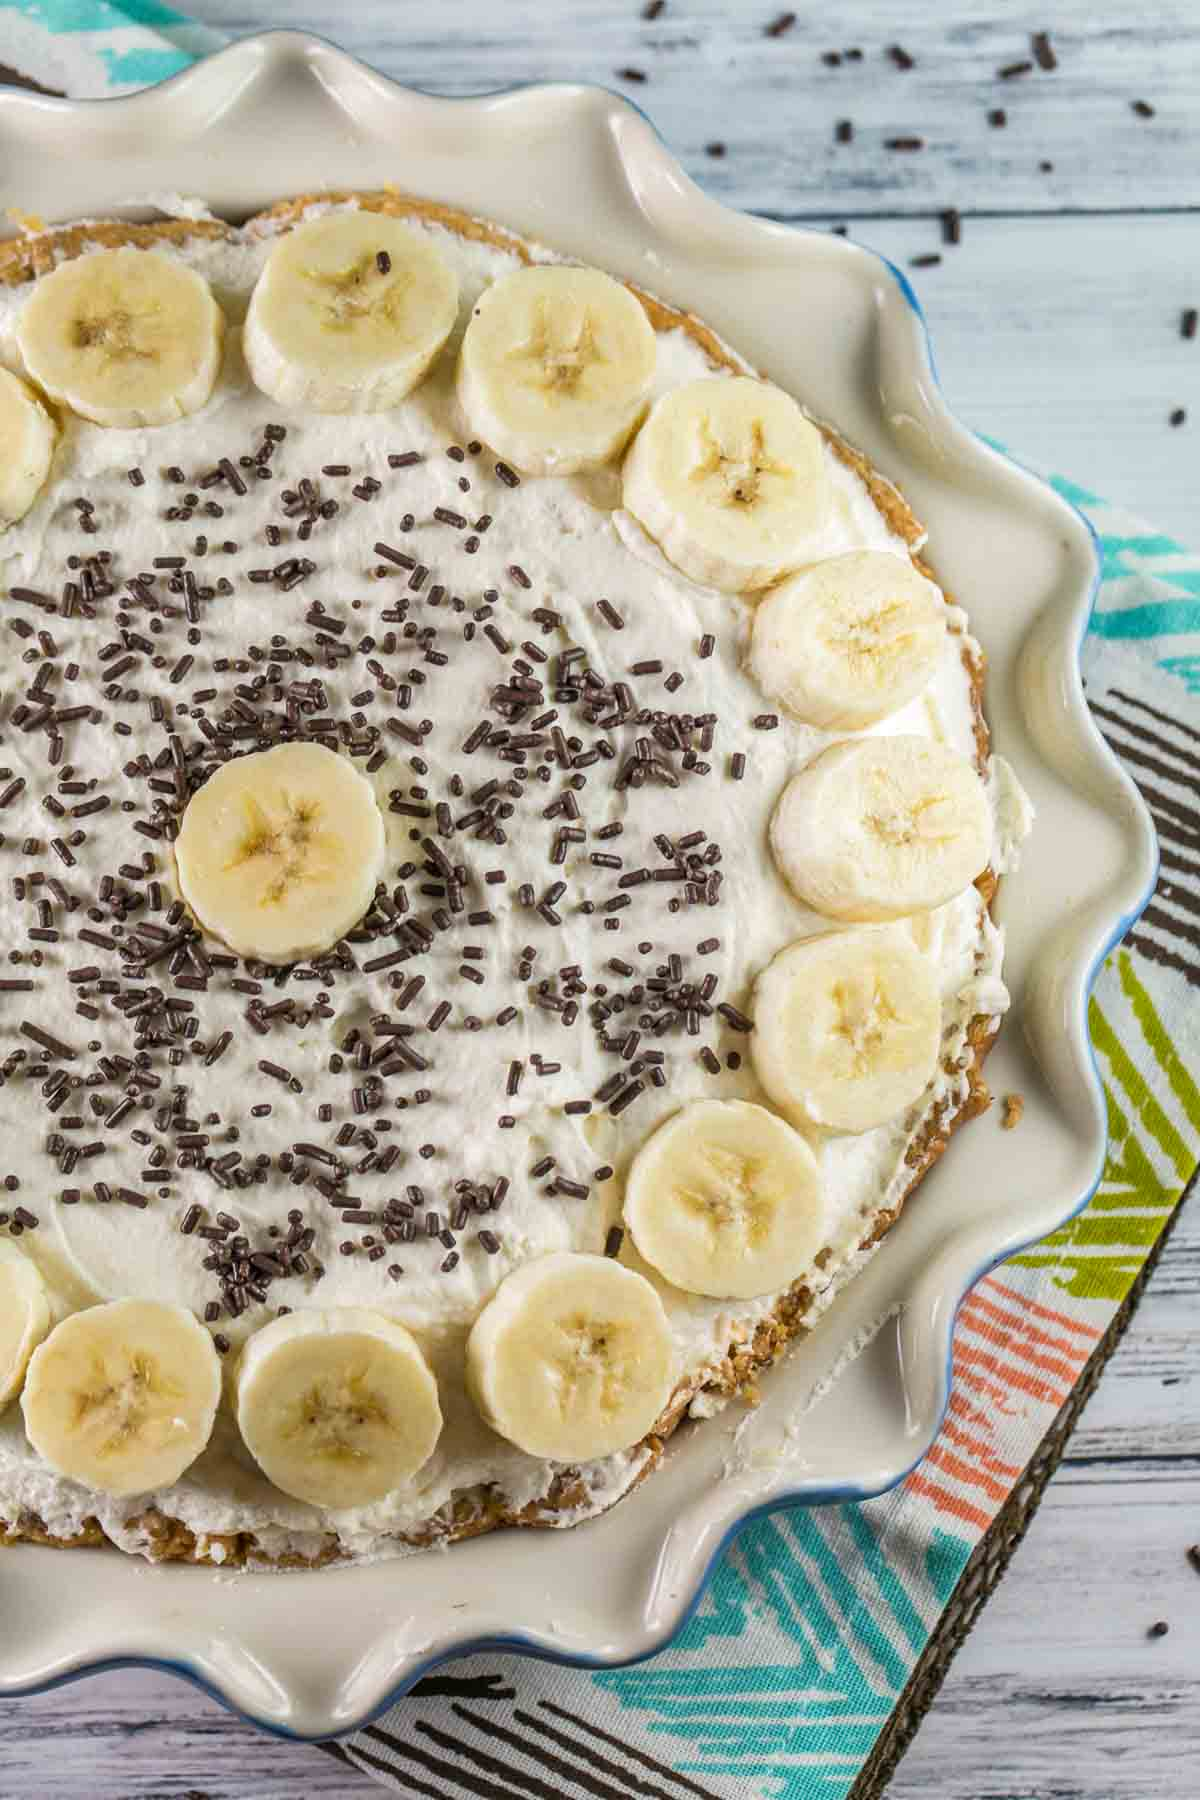 Old Fashioned Banana Cream Pie: A traditional, homemade diner-style pie - banana-infused pastry cream, sliced fresh bananas, and sky-high whipped cream. {bunseburnerbakery.com} #pie #bananacreampie